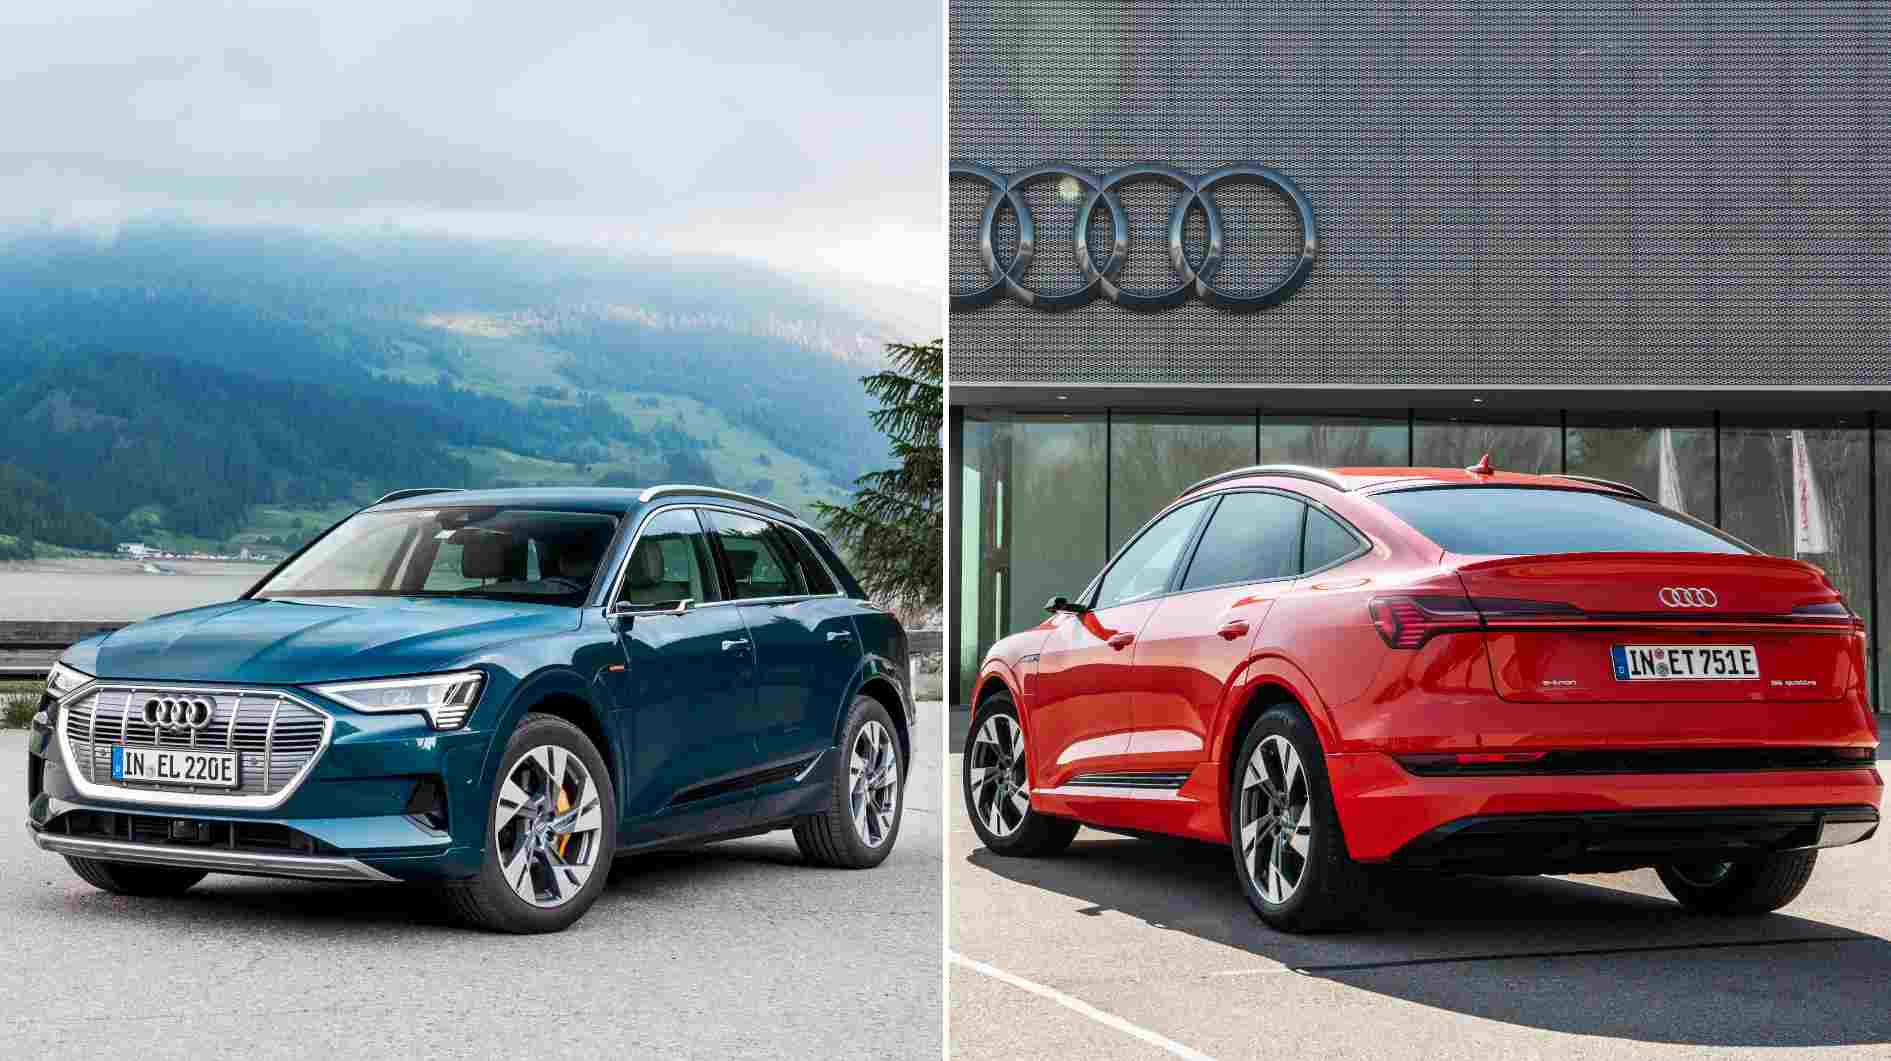 Audi e-tron, e-tron Sportback to be launched in India by mid-2021, more Audi EVs in the pipeline- Technology News, FP